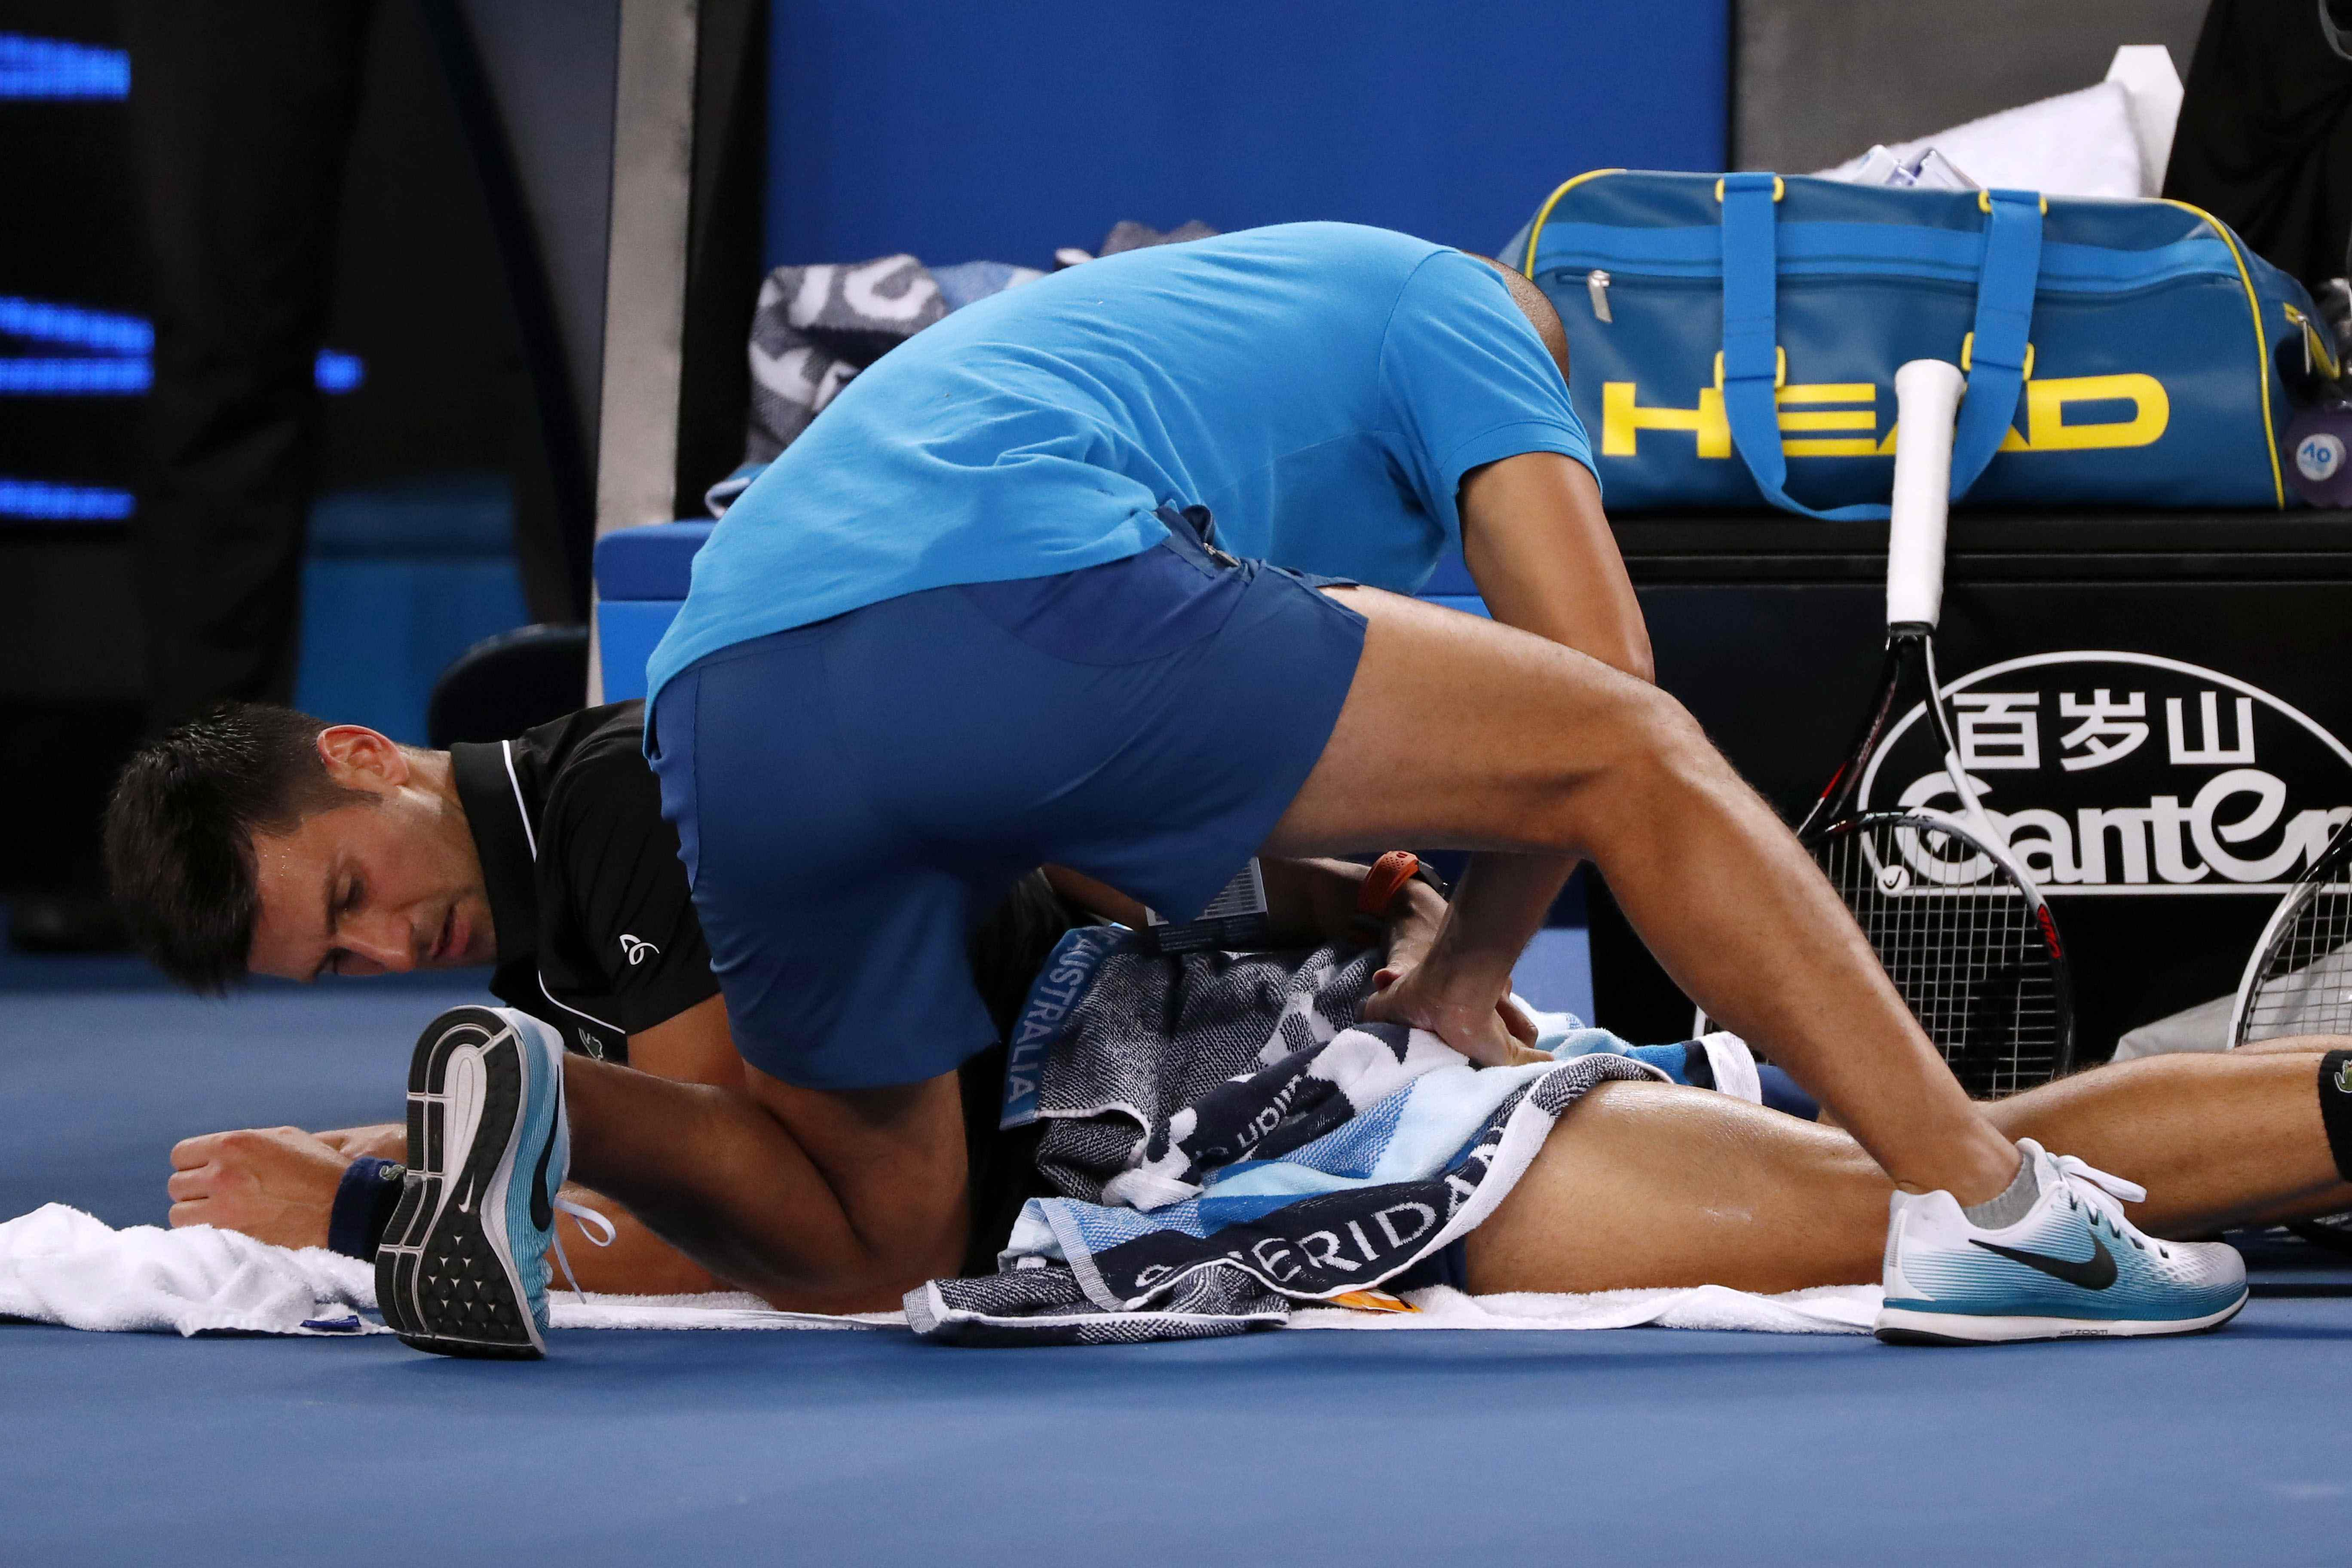 Novak Djokovic called for a medical timeout during the Australian Open match